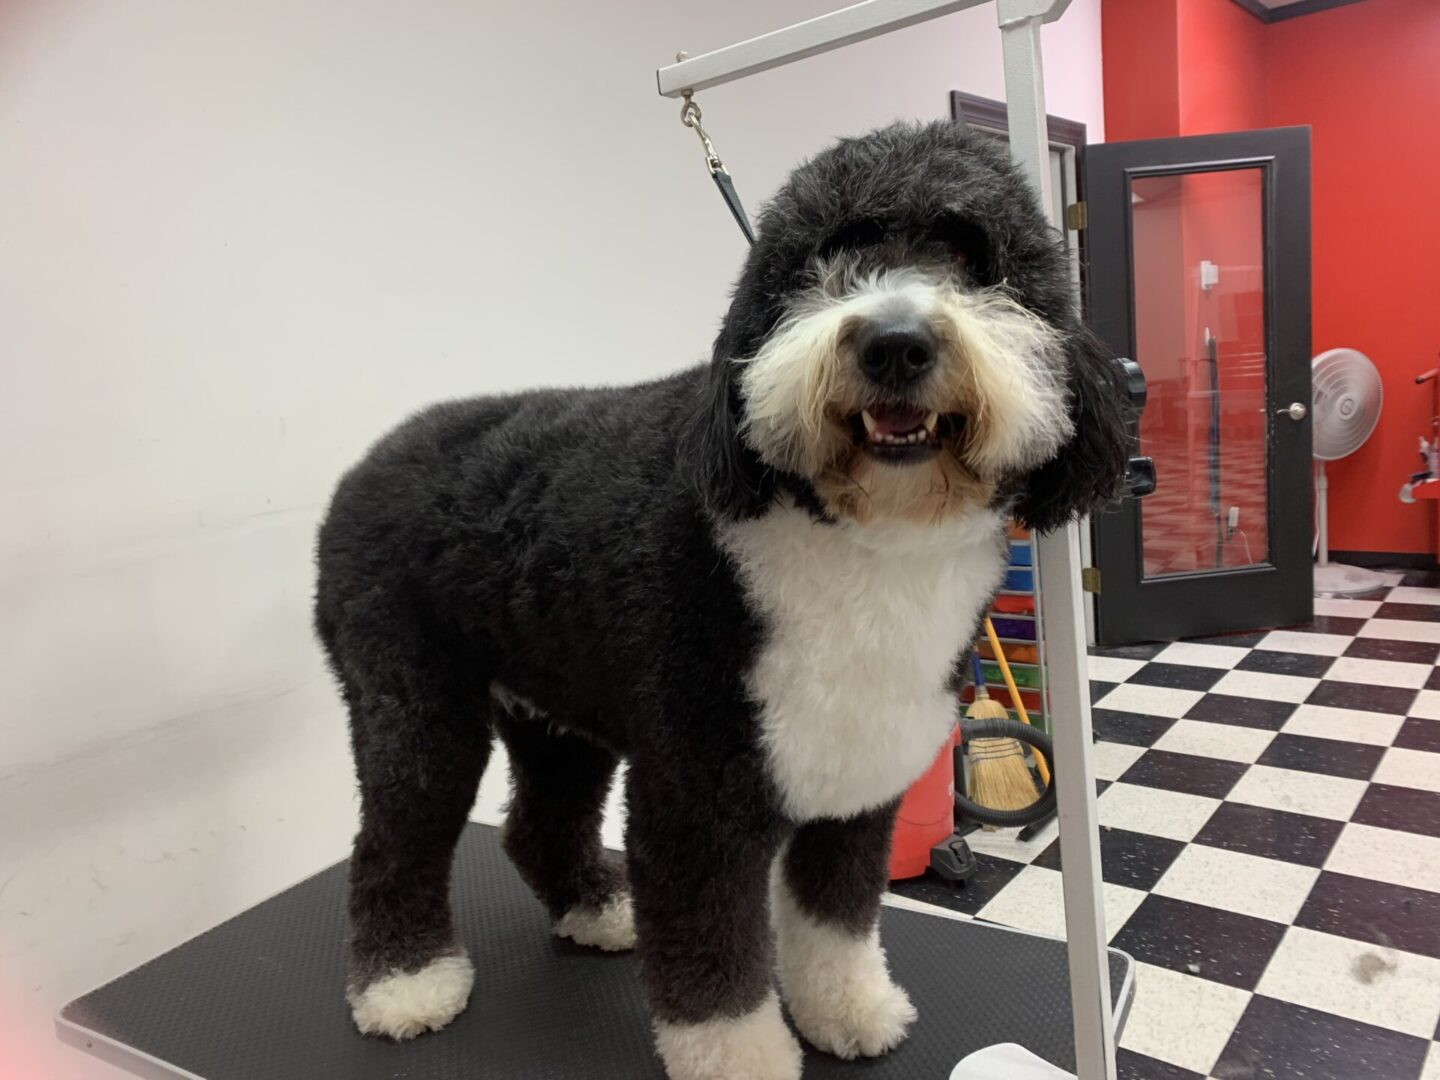 a black and white fluffy dog